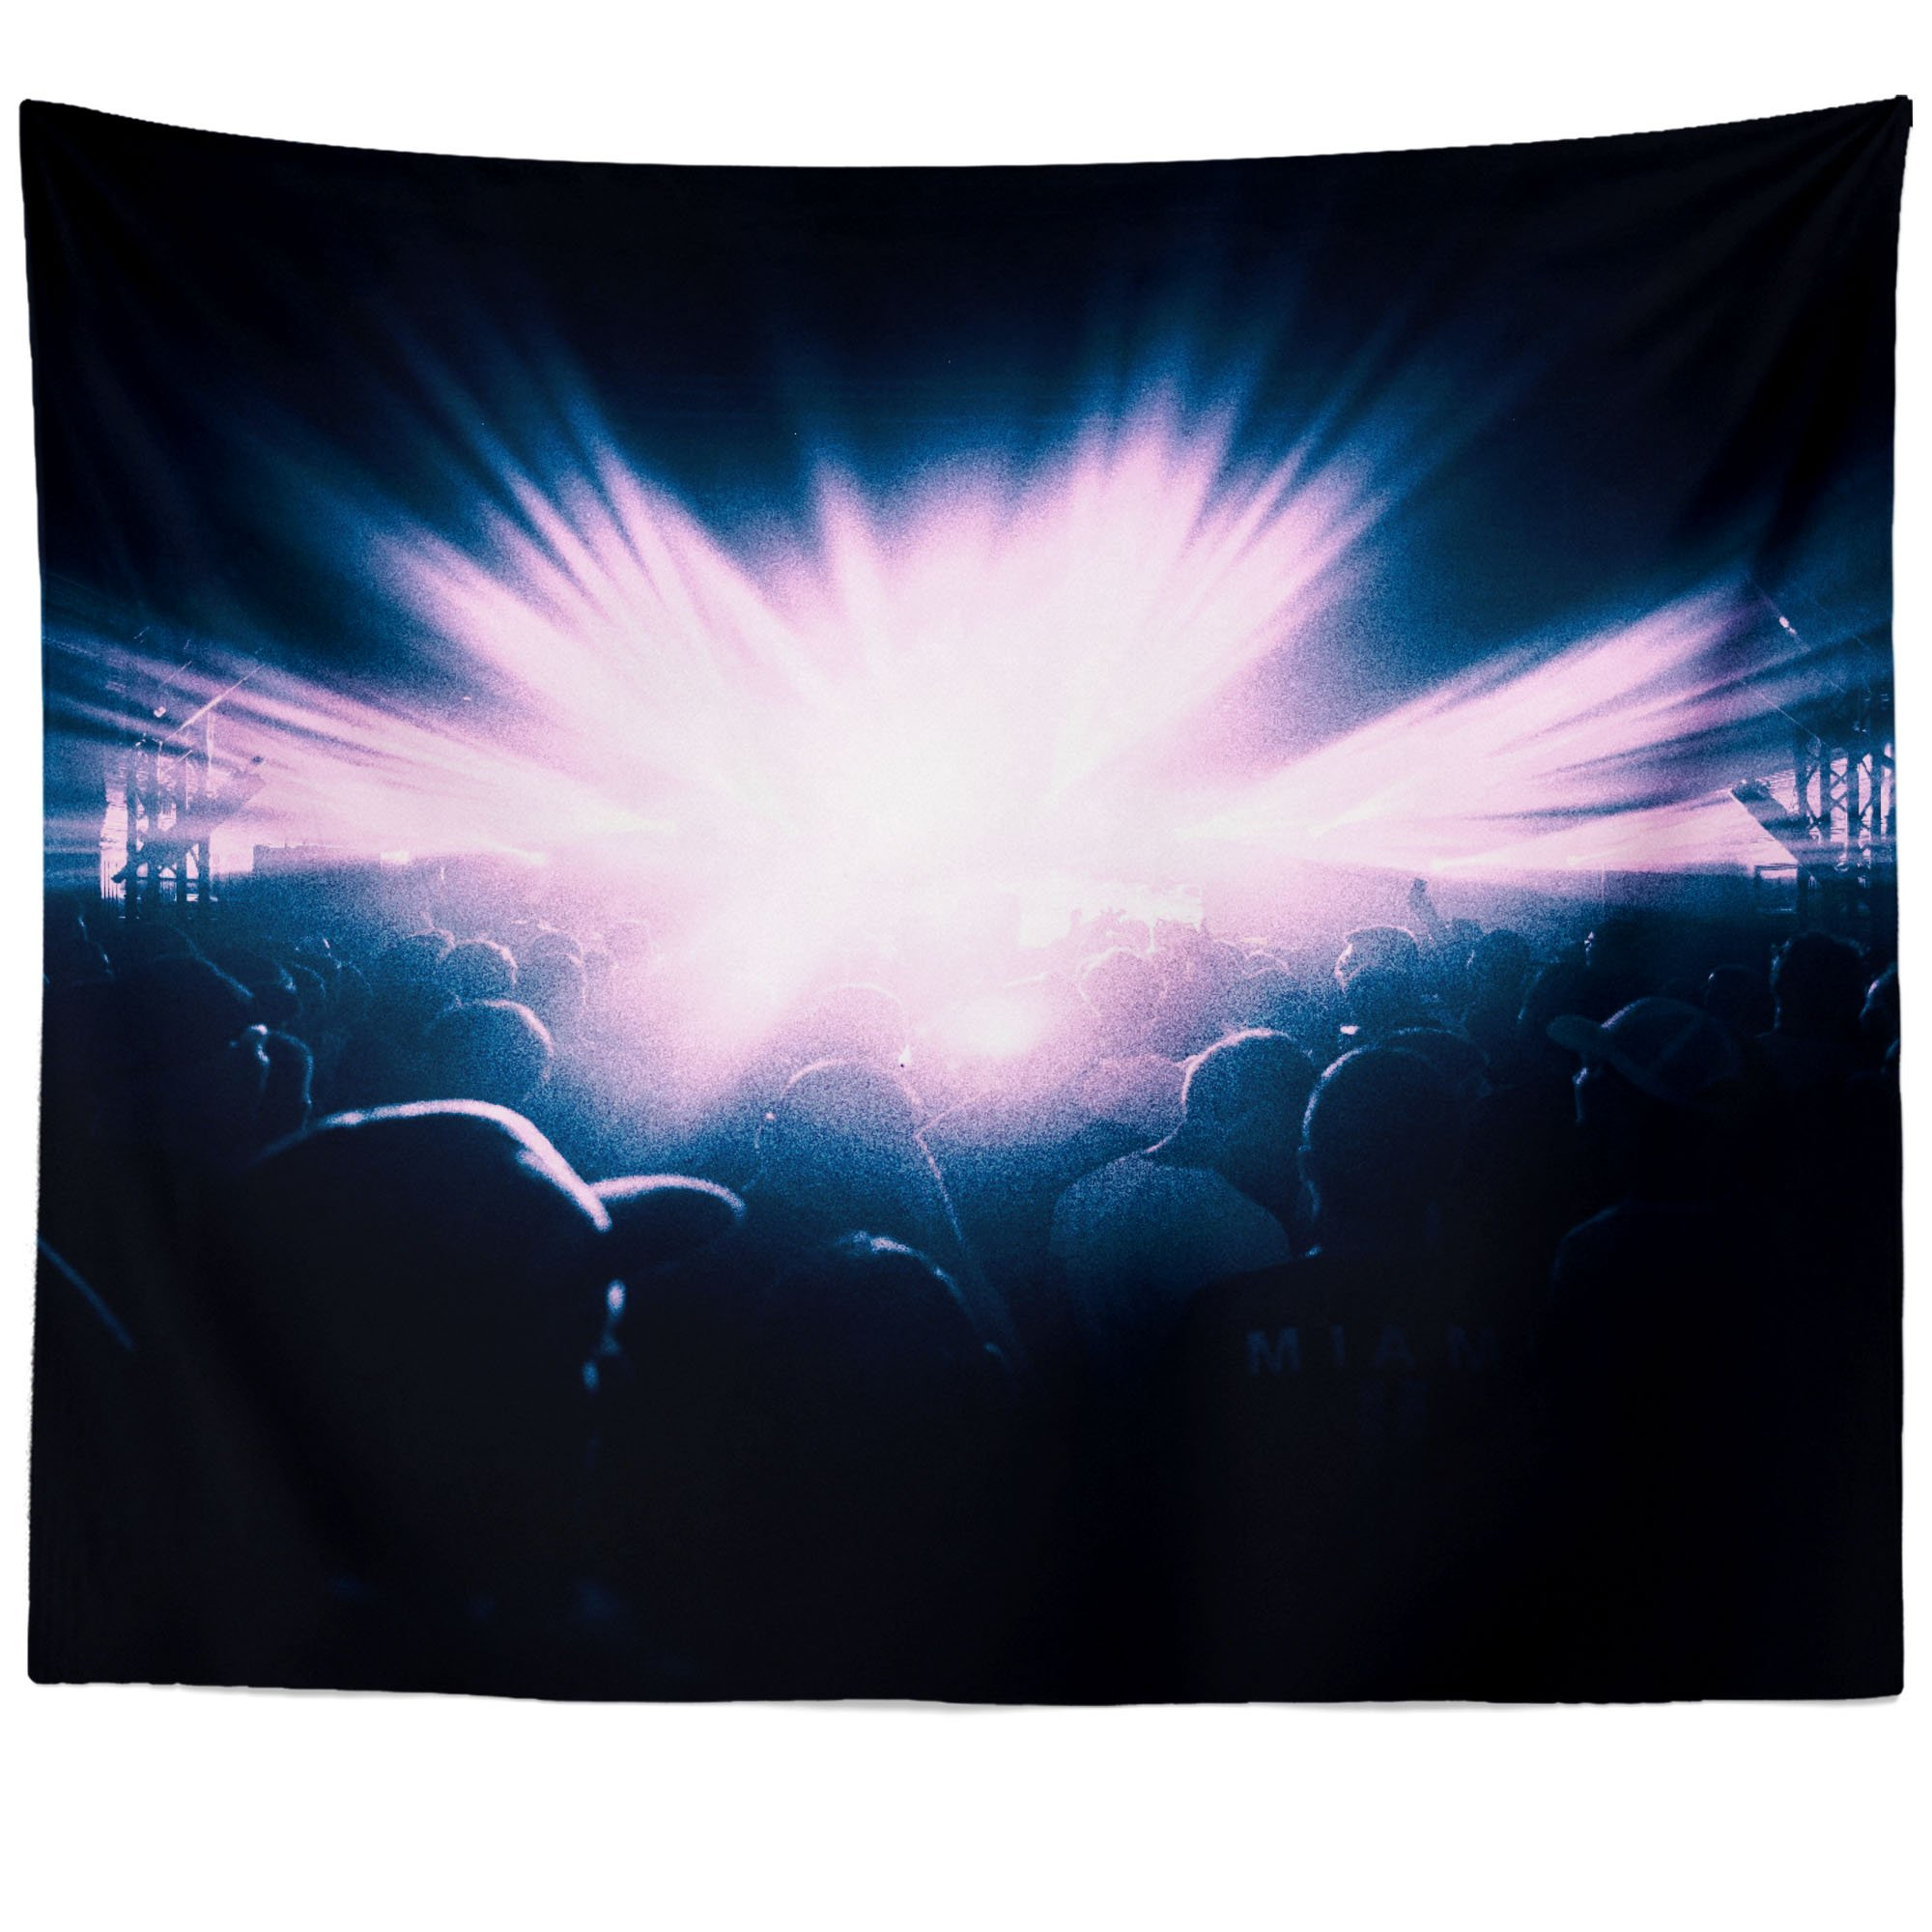 Westlake Art - Wall Hanging Tapestry - Bingo Night - Photography Home Decor Living Room - 26x36in by Westlake Art